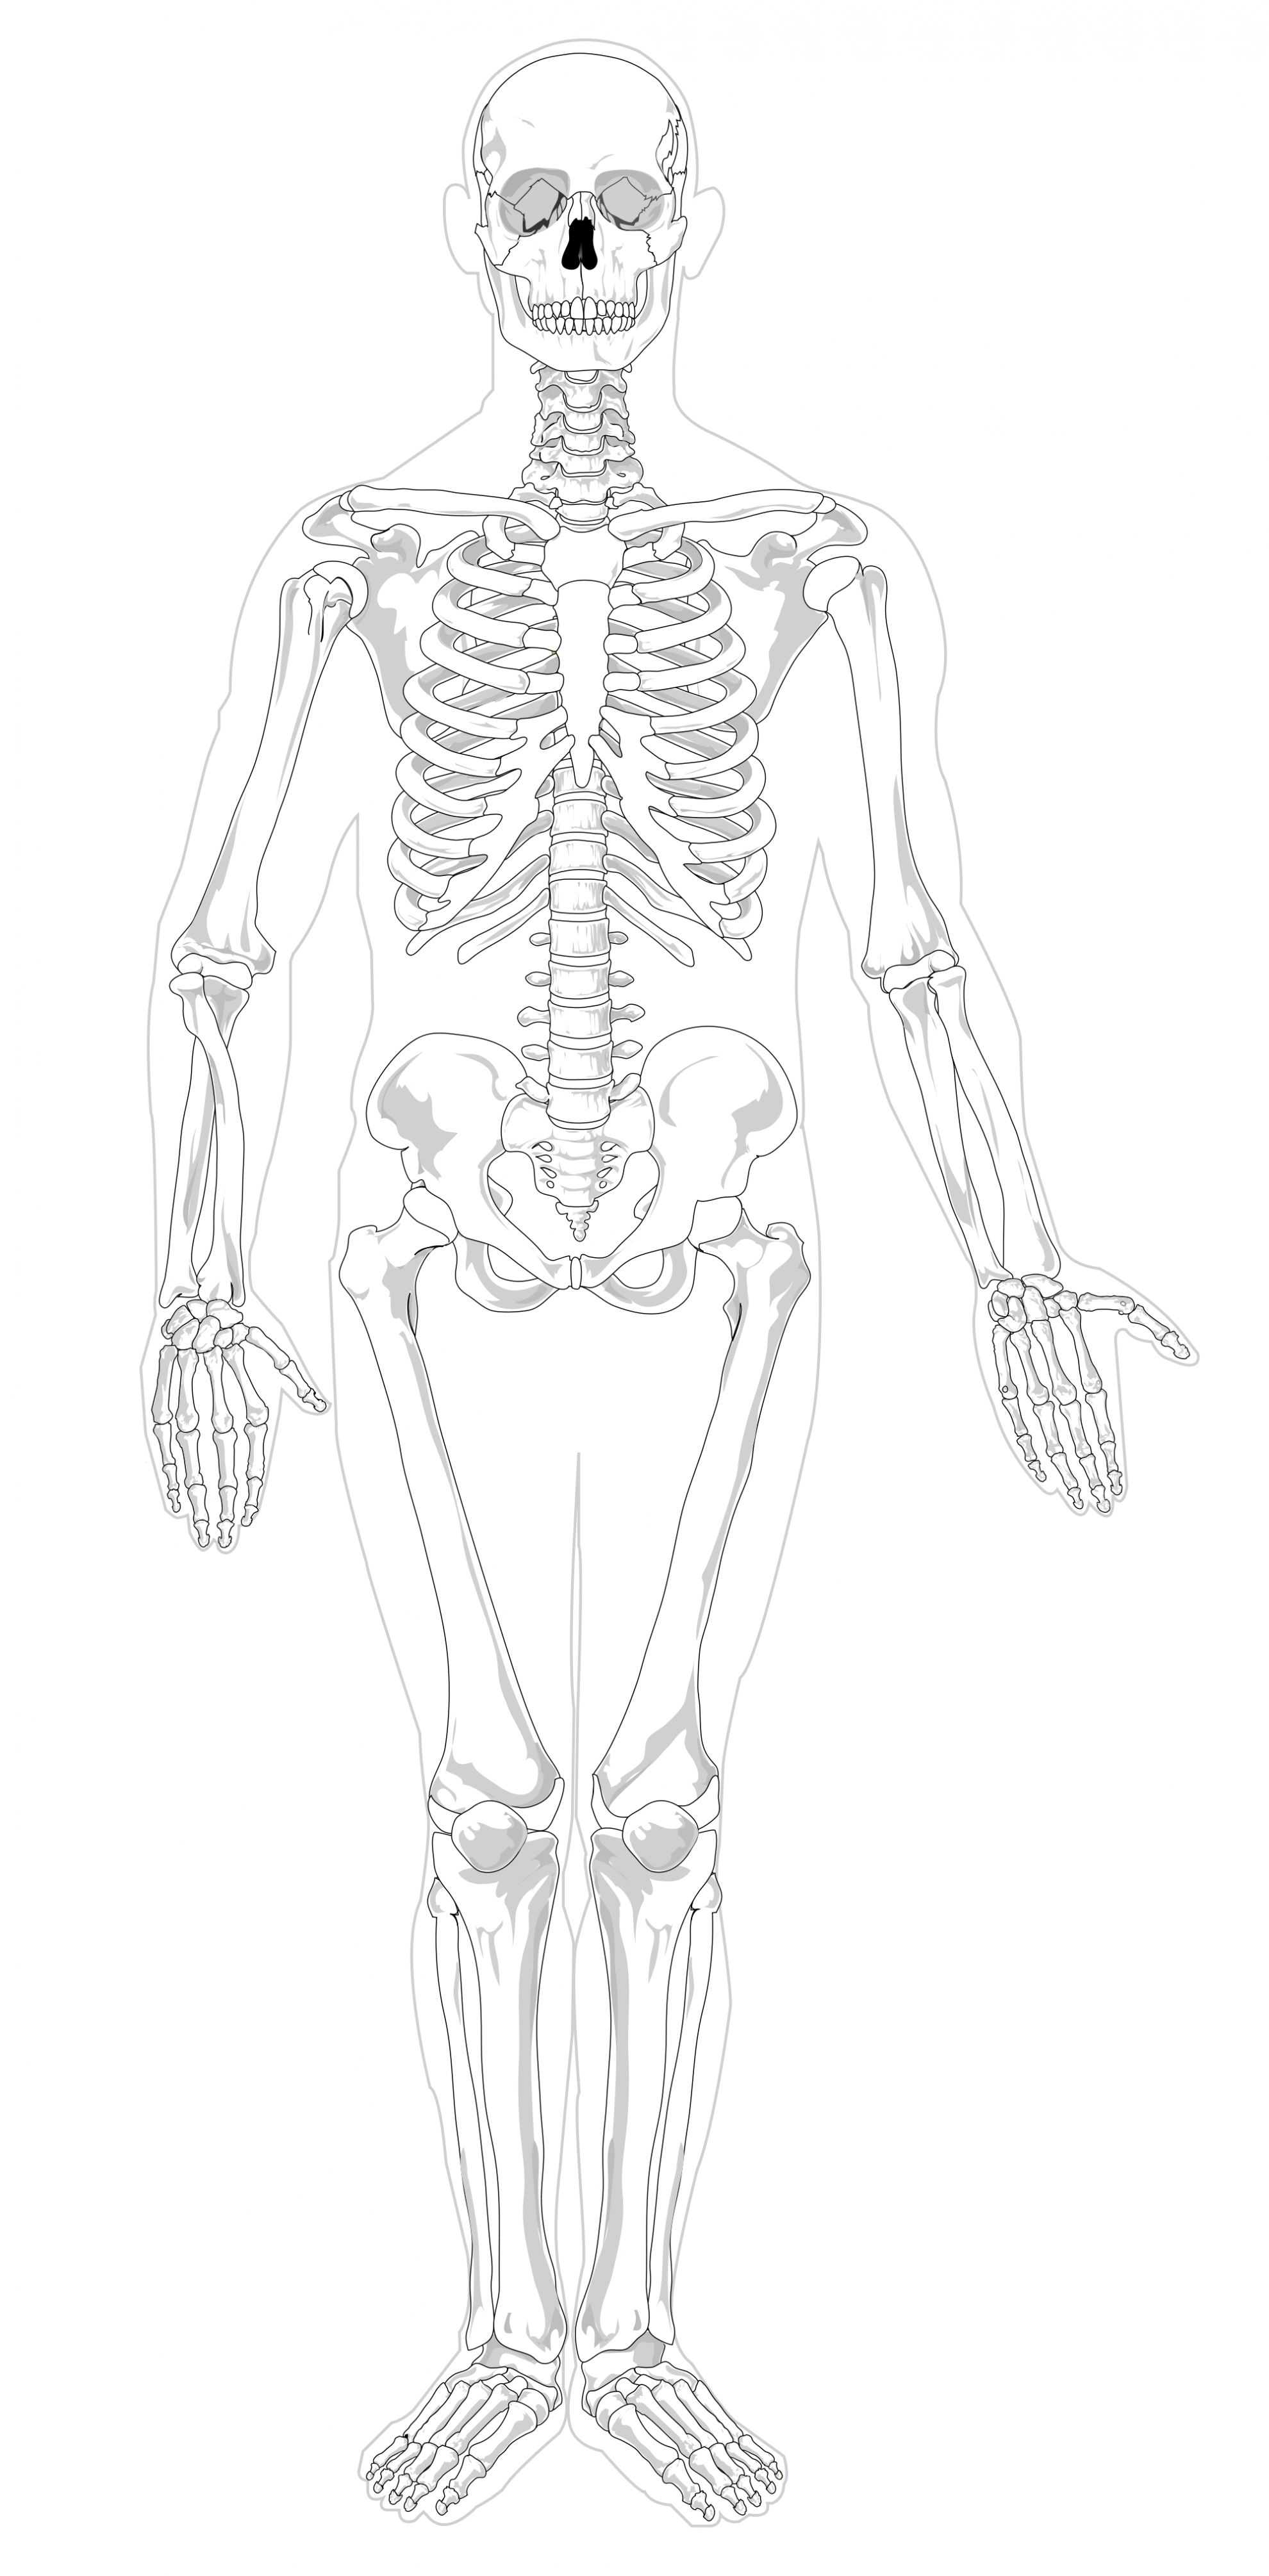 unlabeled diagram of the human skeleton unlabeled diagram of the human skeleton bones of the [ 1980 x 4020 Pixel ]